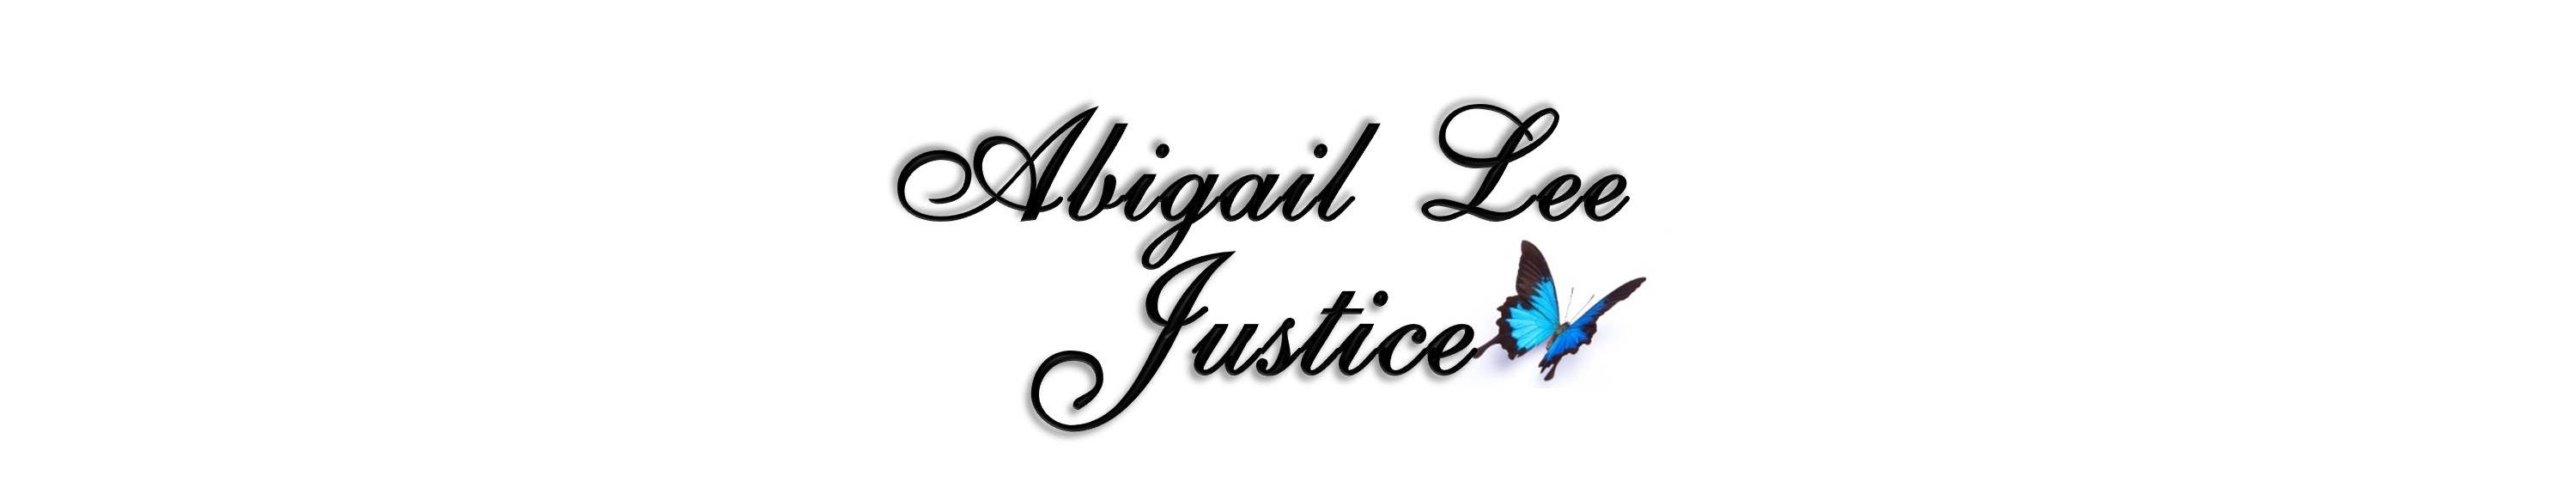 Abigail Lee Justice